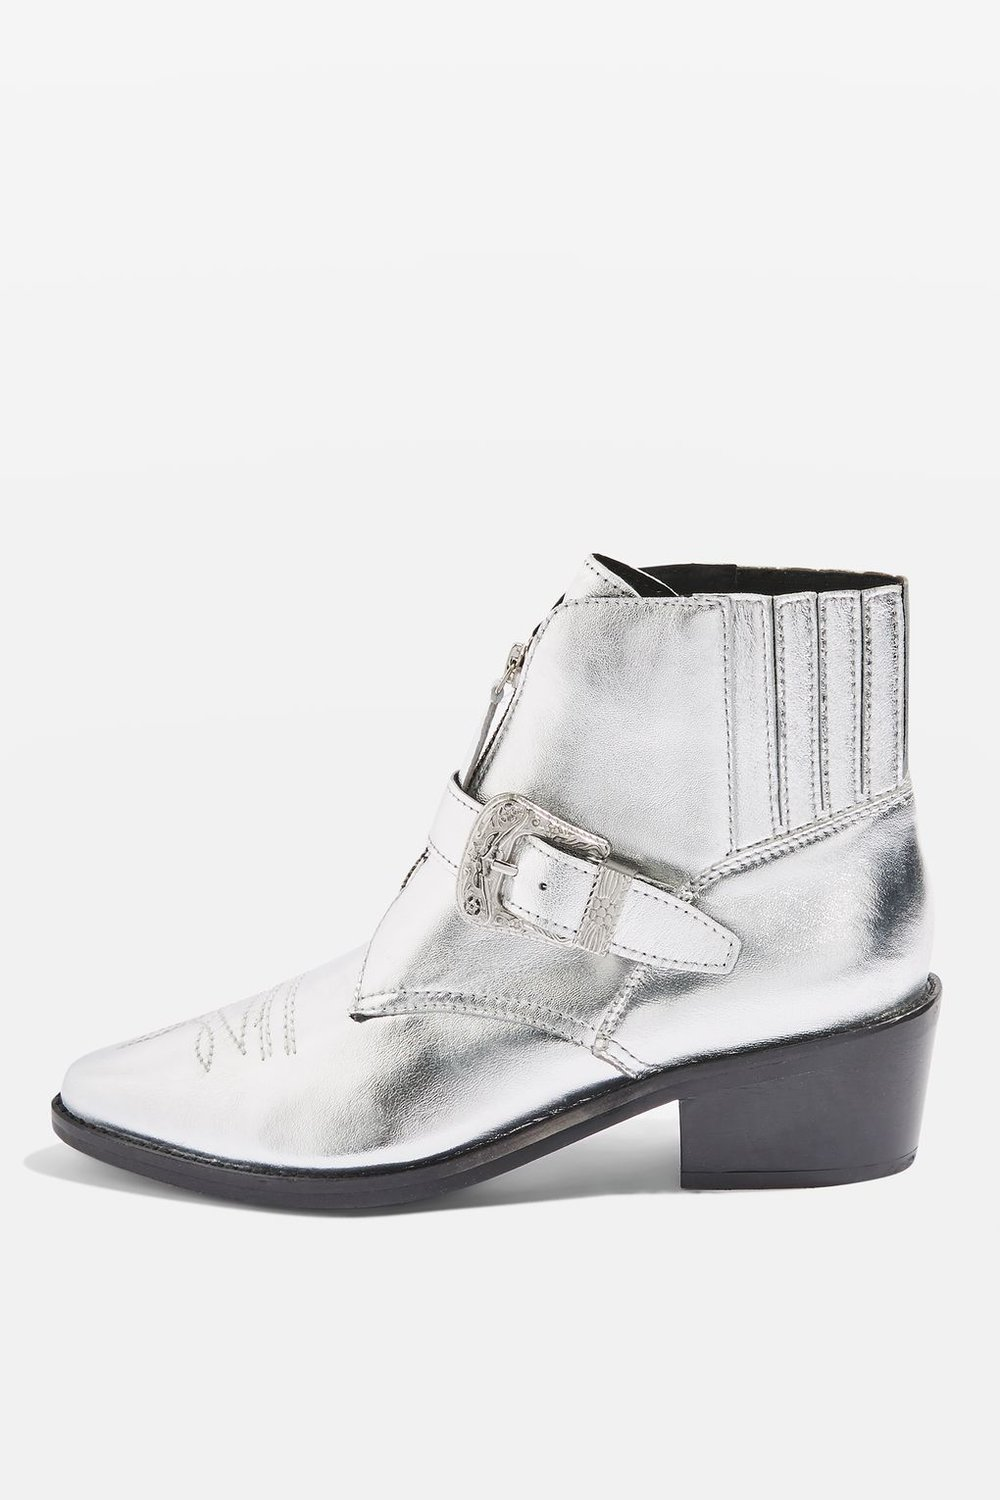 Topshop Leather Boots - £72